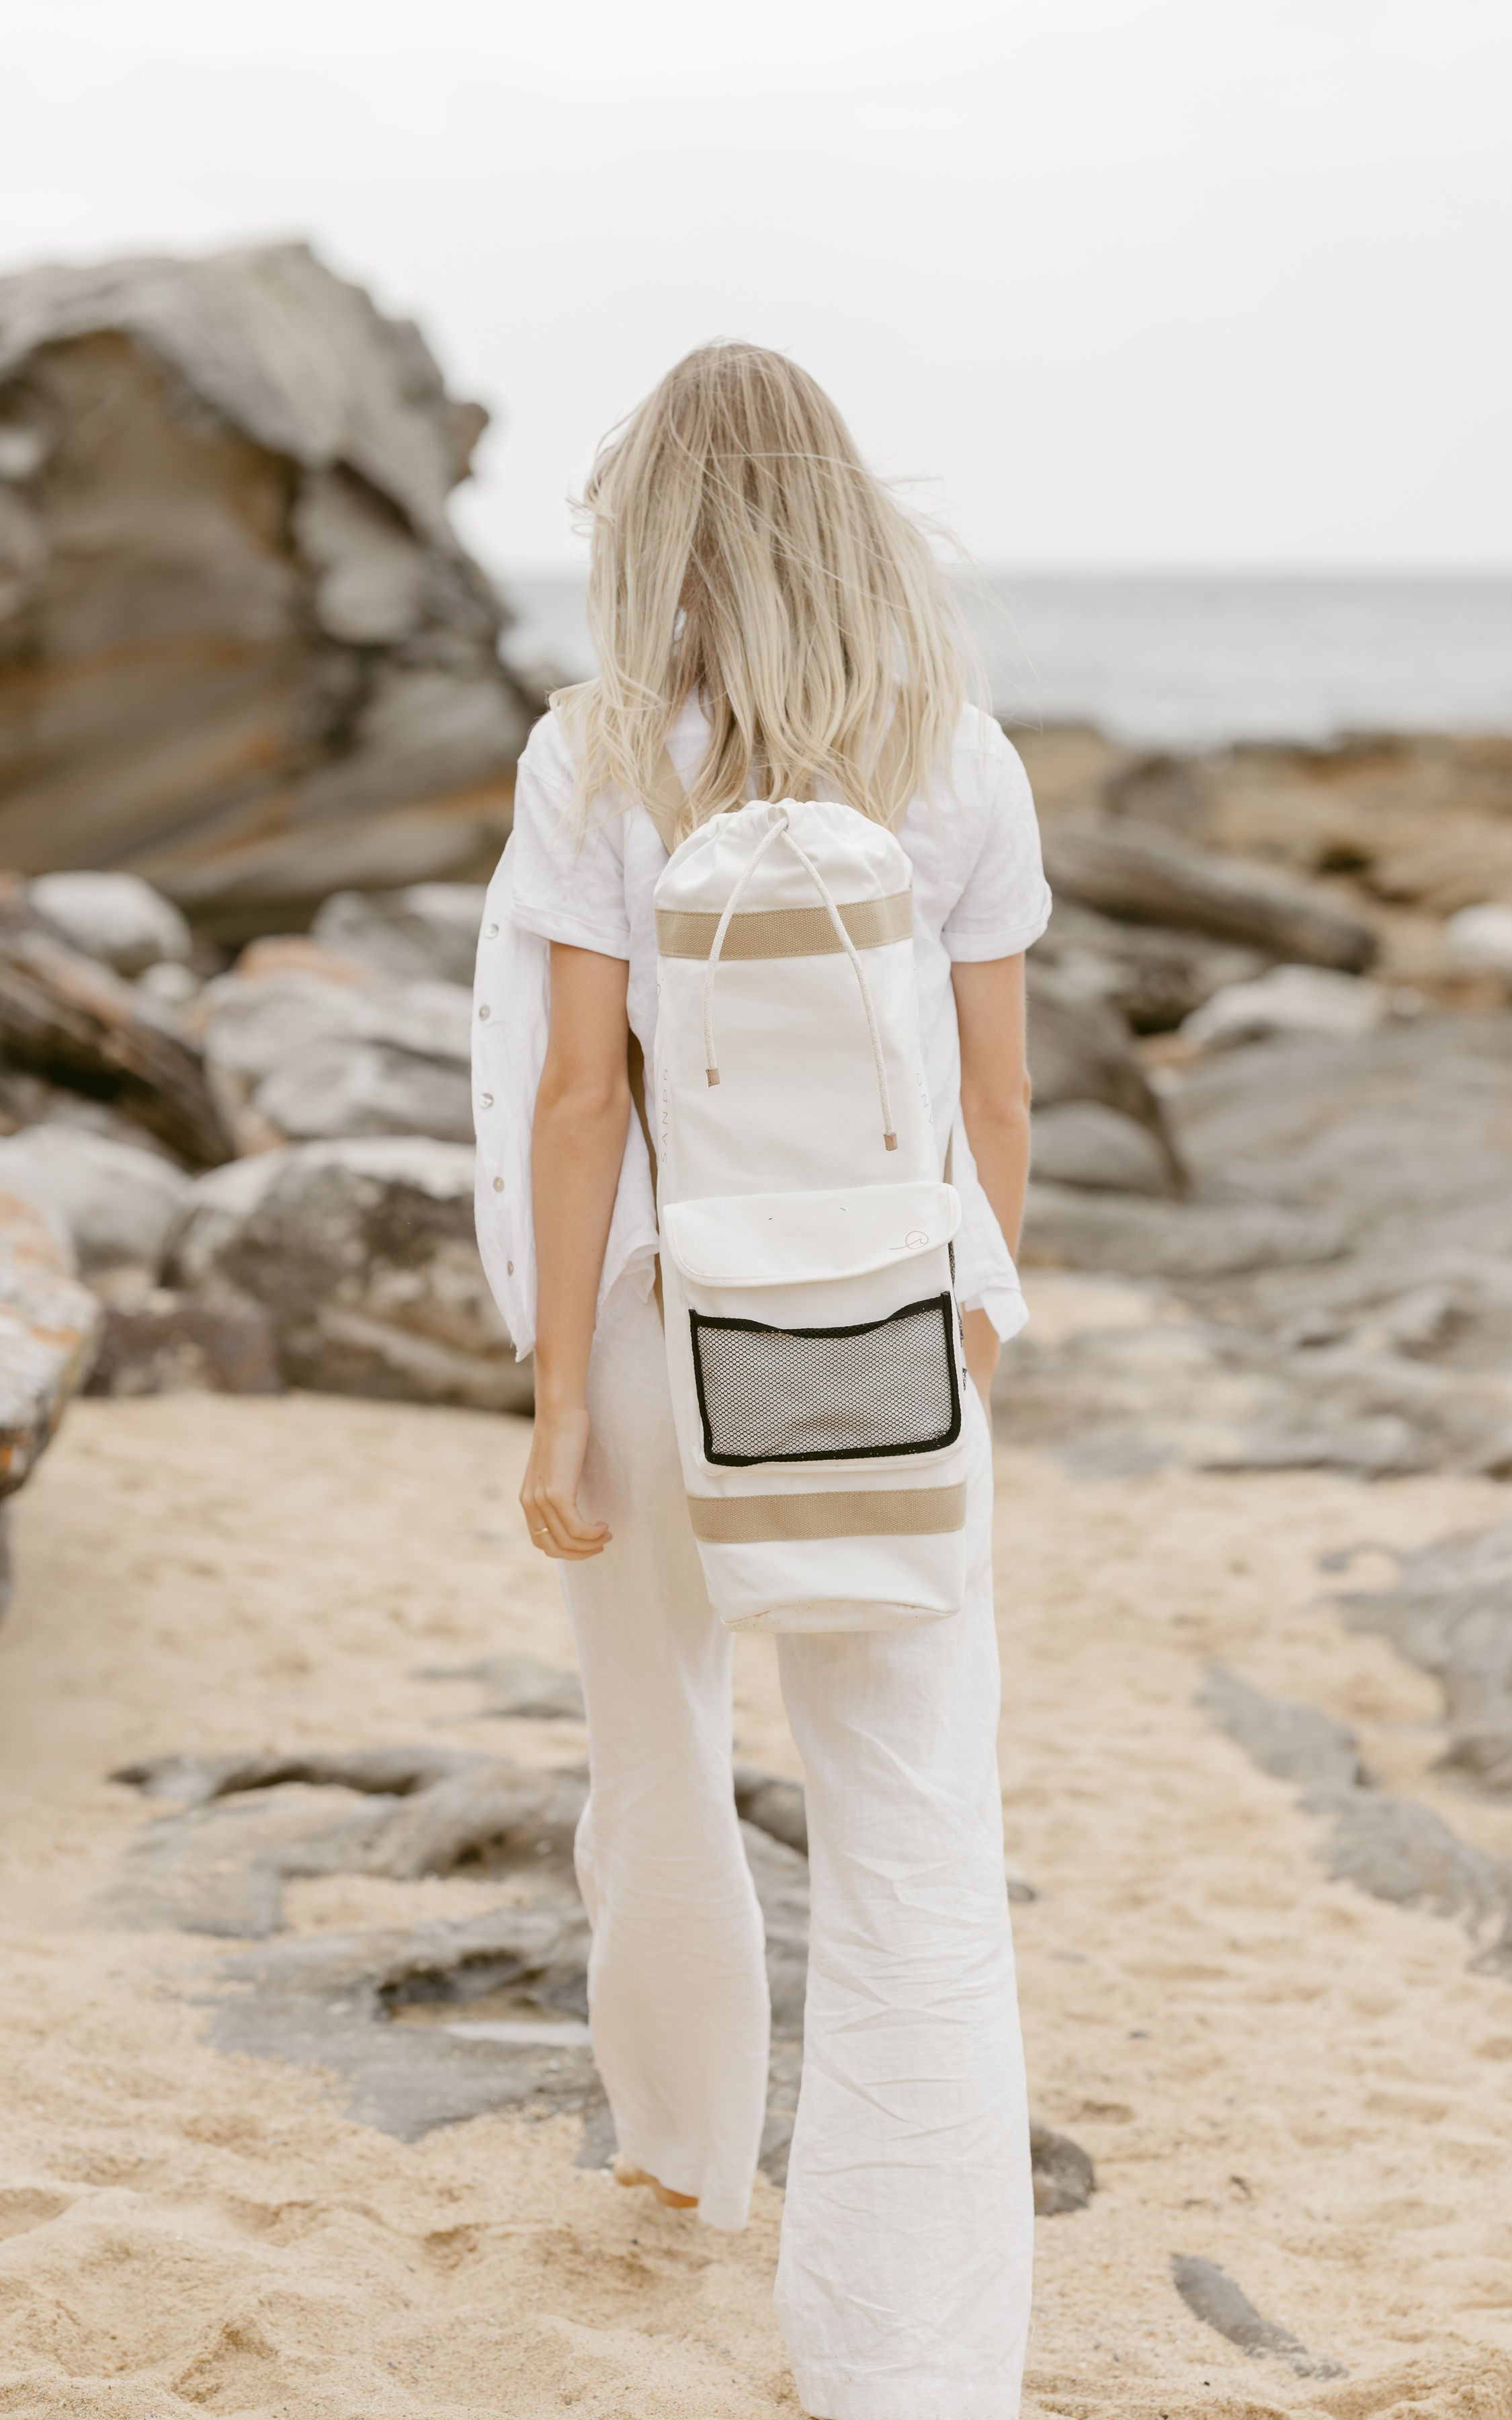 Sandbar and Matching Canvas Bag - The Leighton Release